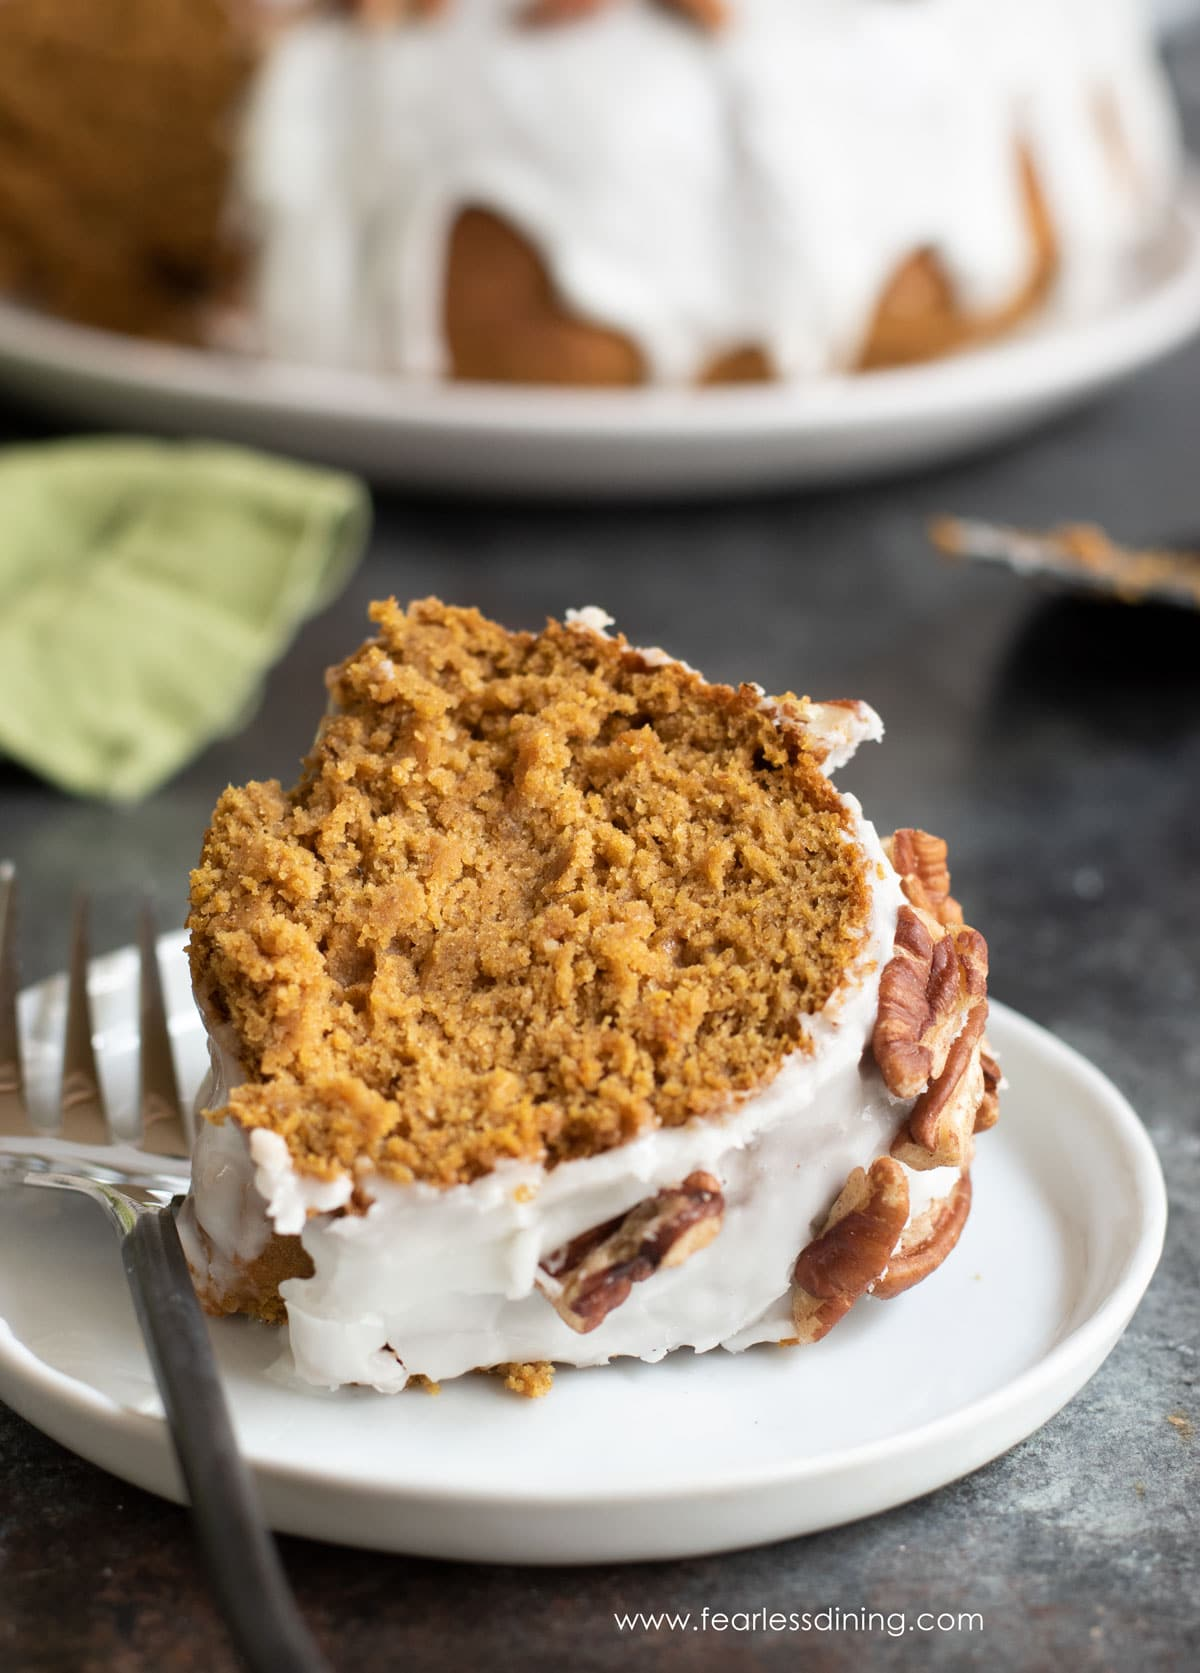 a slice of gluten free pumpkin bundt cake on a plate with a fork